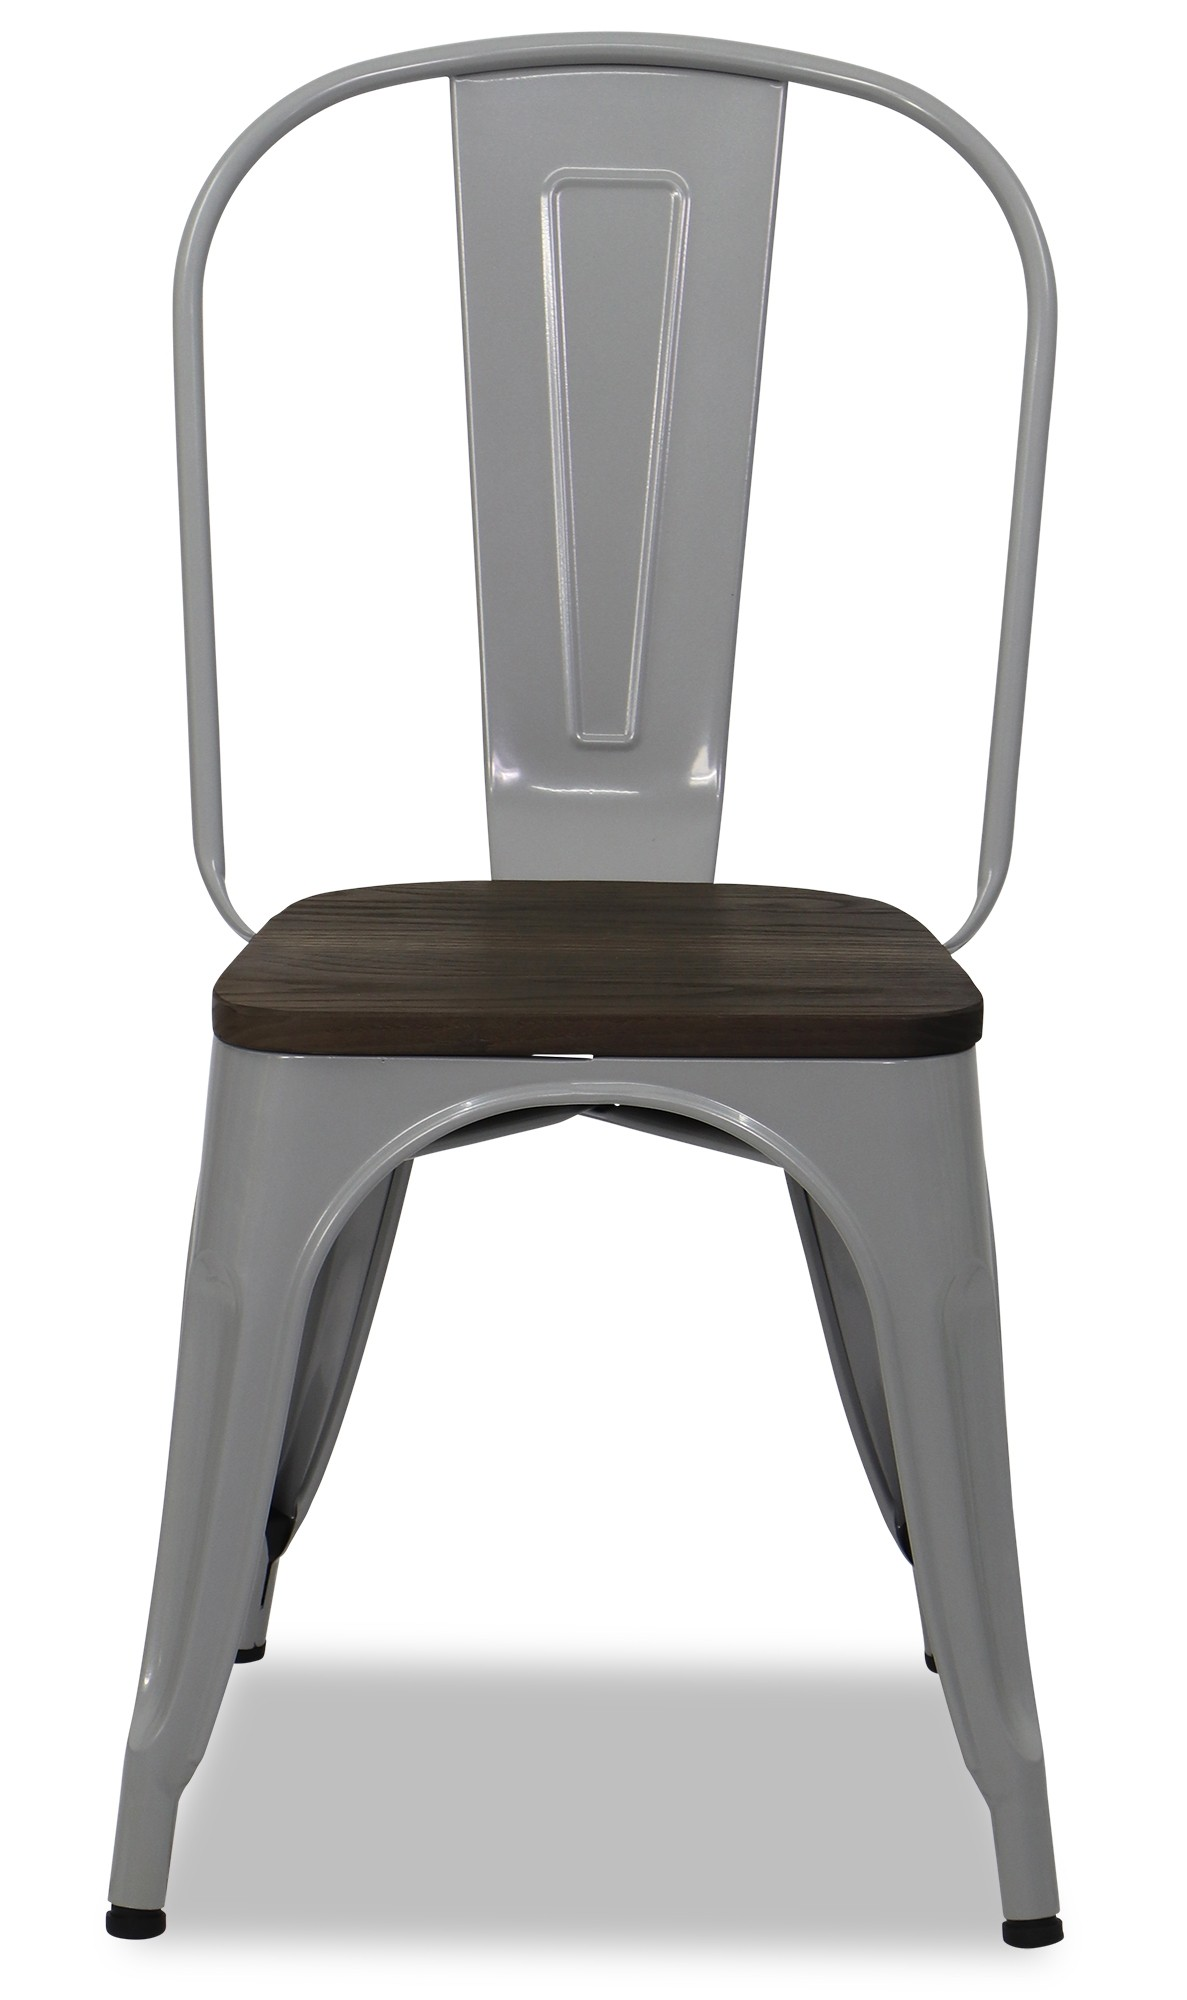 Metal Chair With Wood Seat Retro Metal Chair With Wooden Seat In Grey Furniture